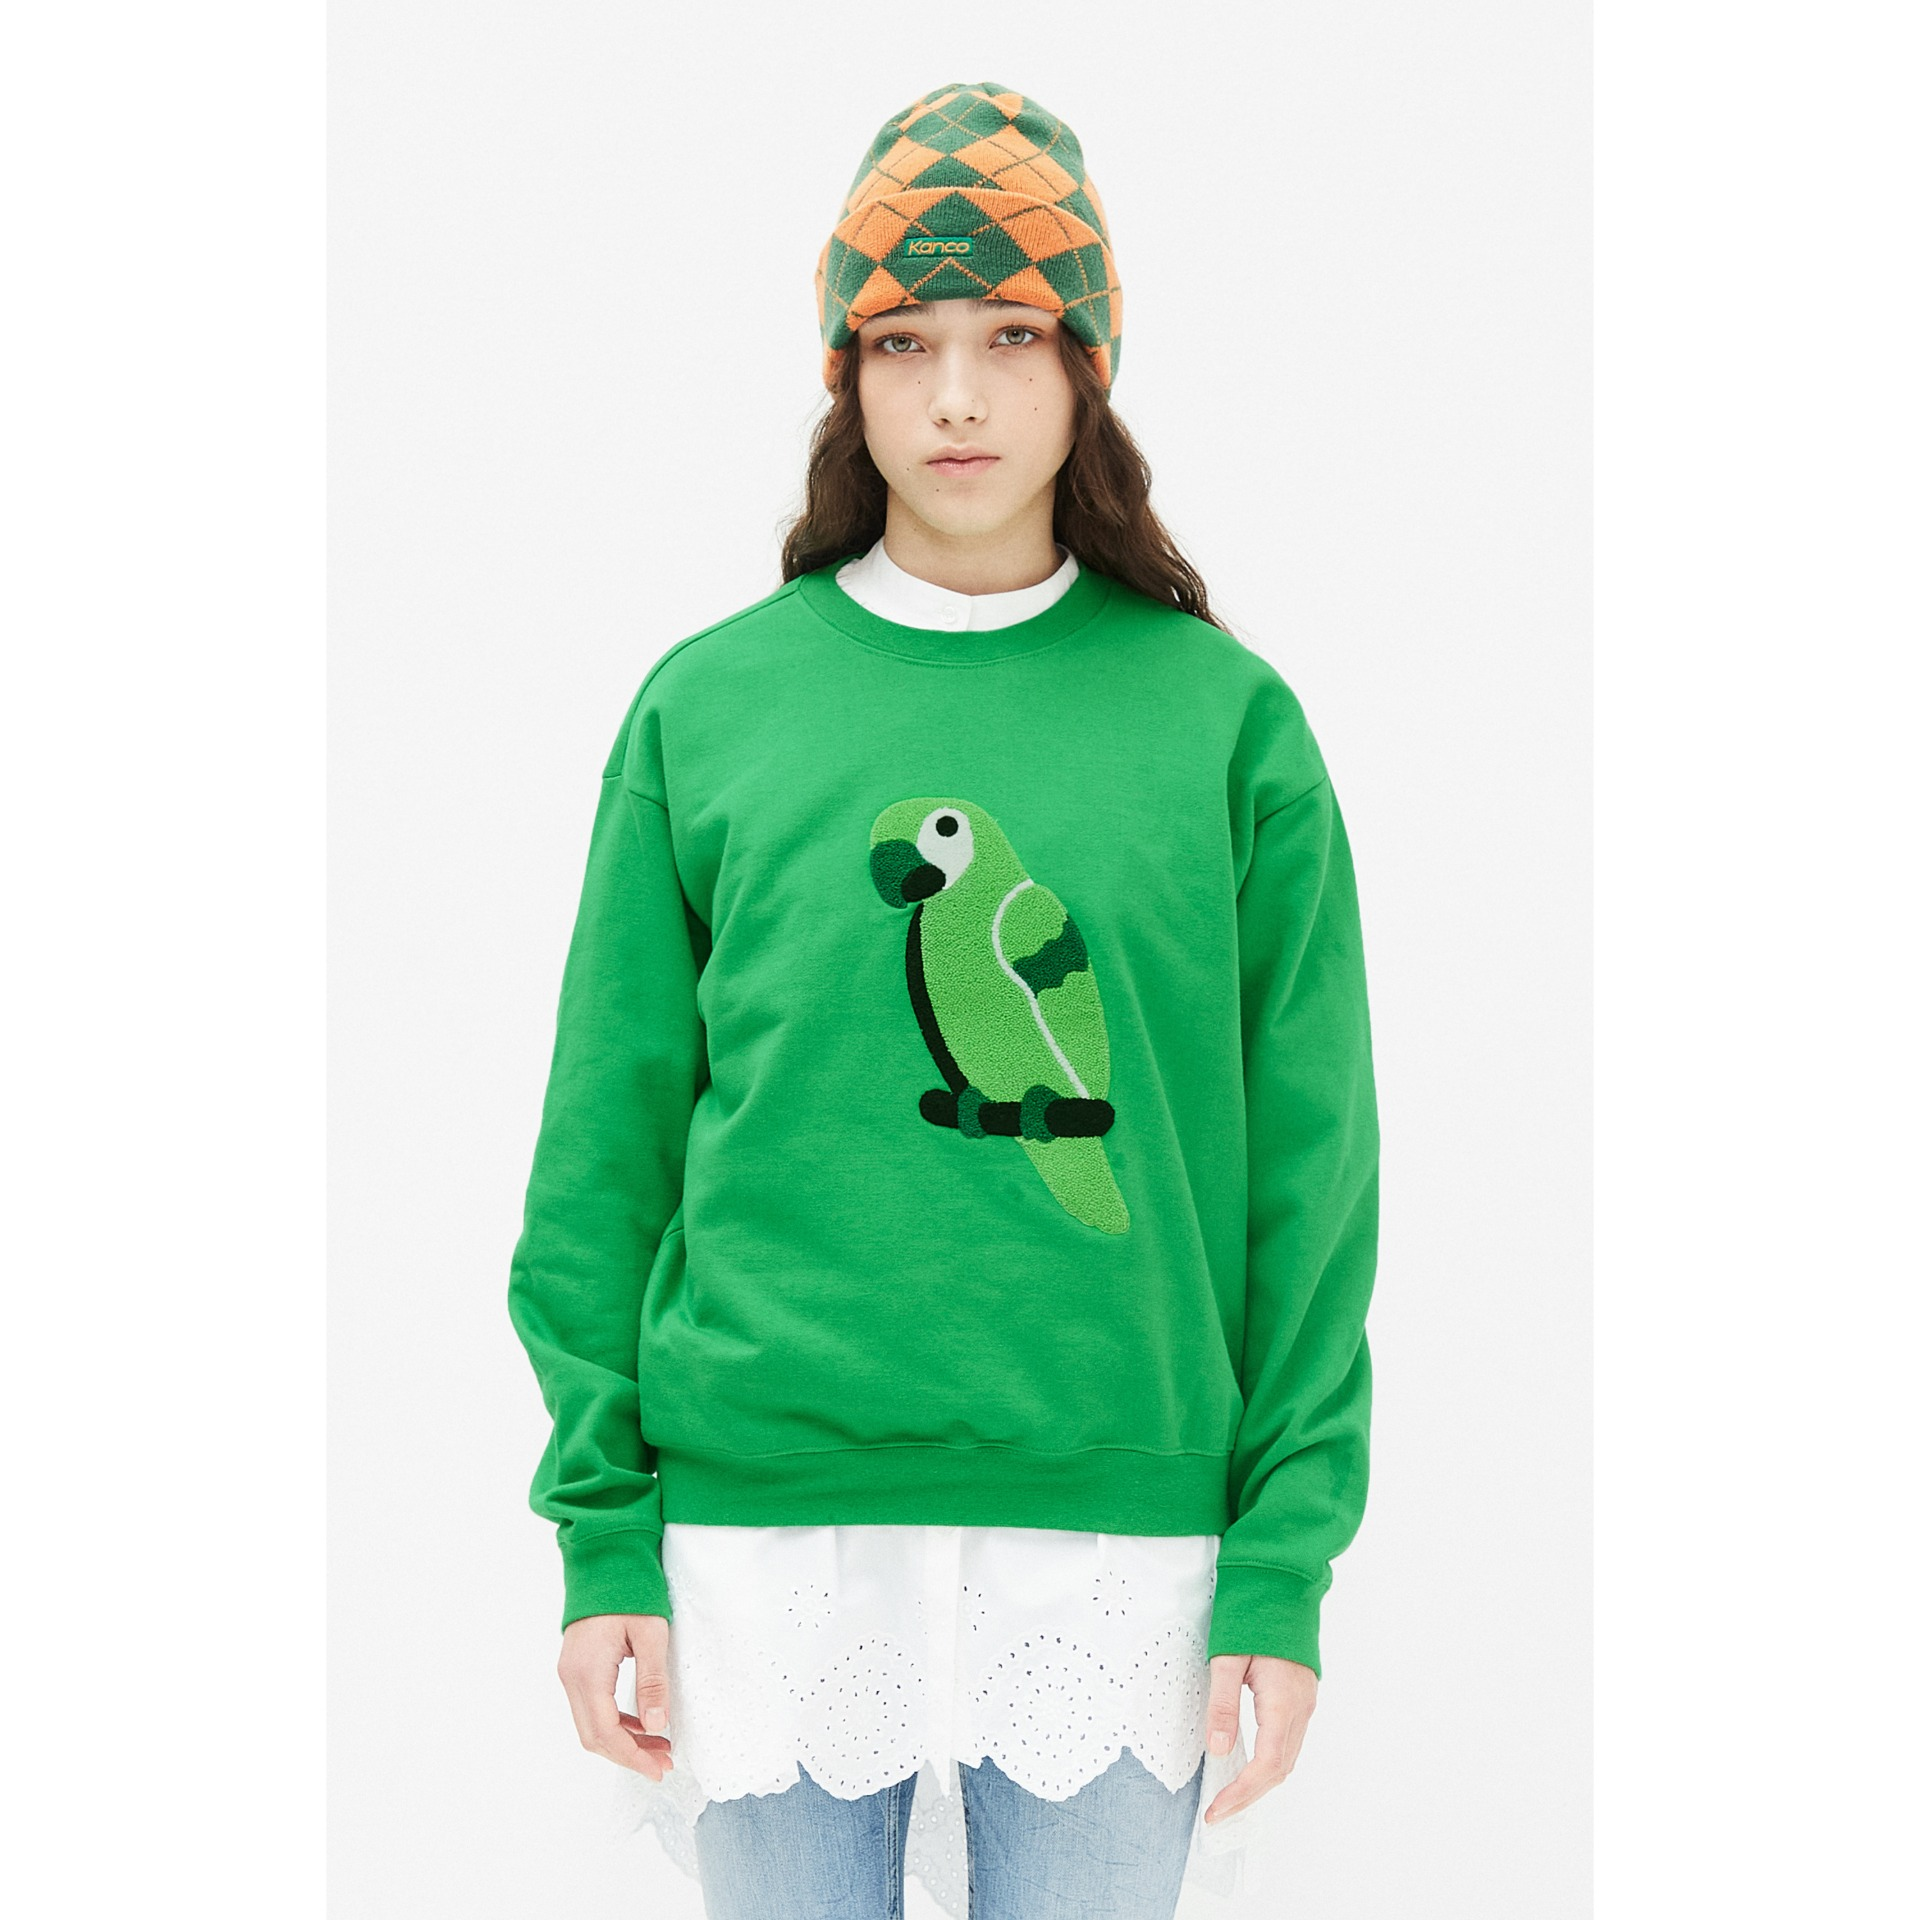 KANCO FULL LOGO SWEATSHIRT green